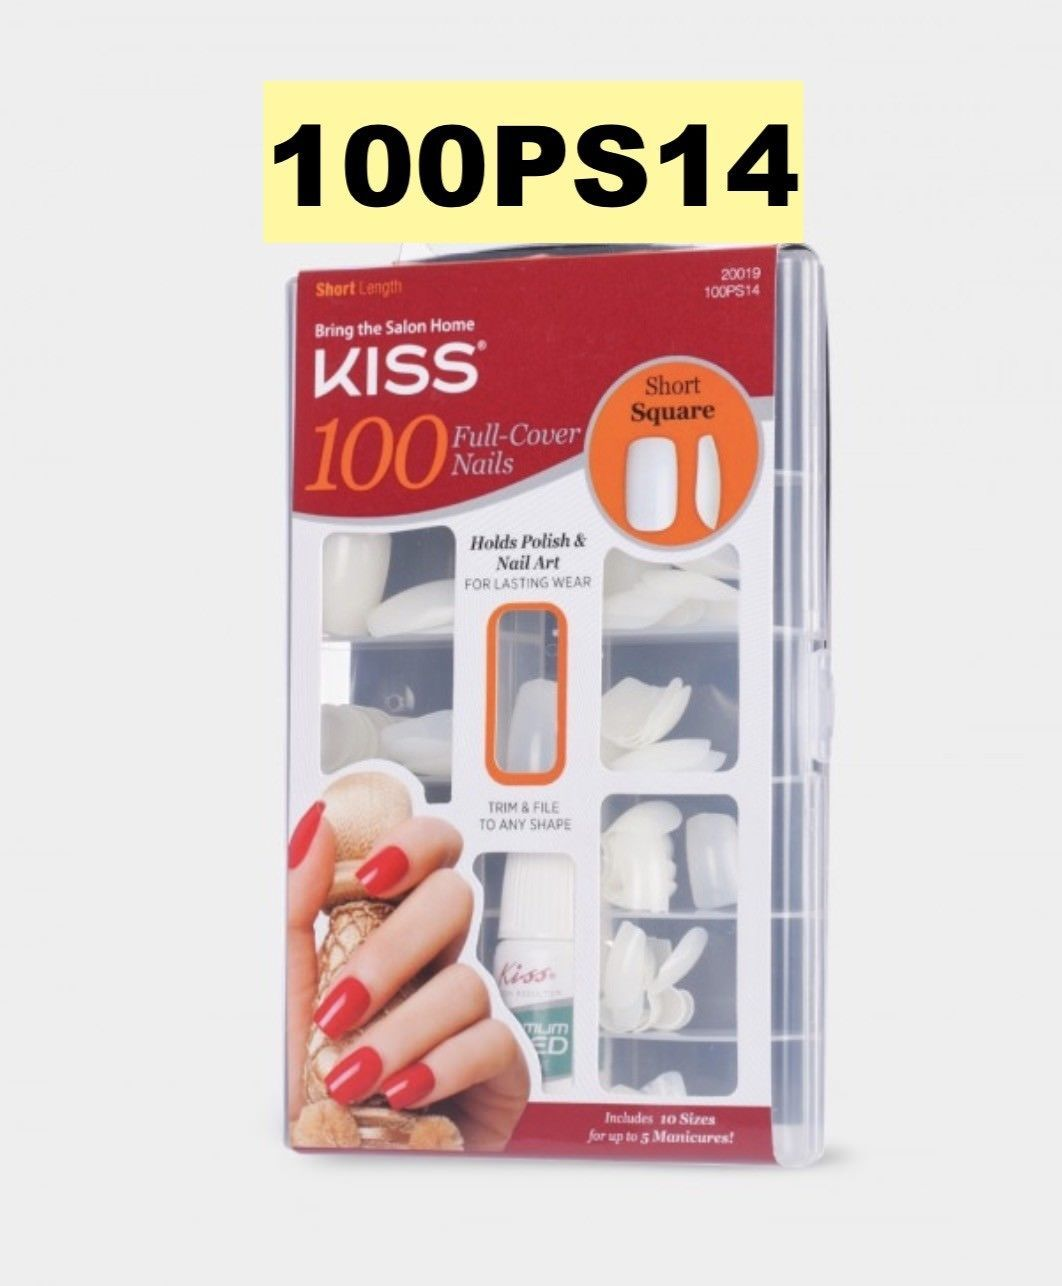 Kiss 100 Full Cover Nails Short Square and 50 similar items